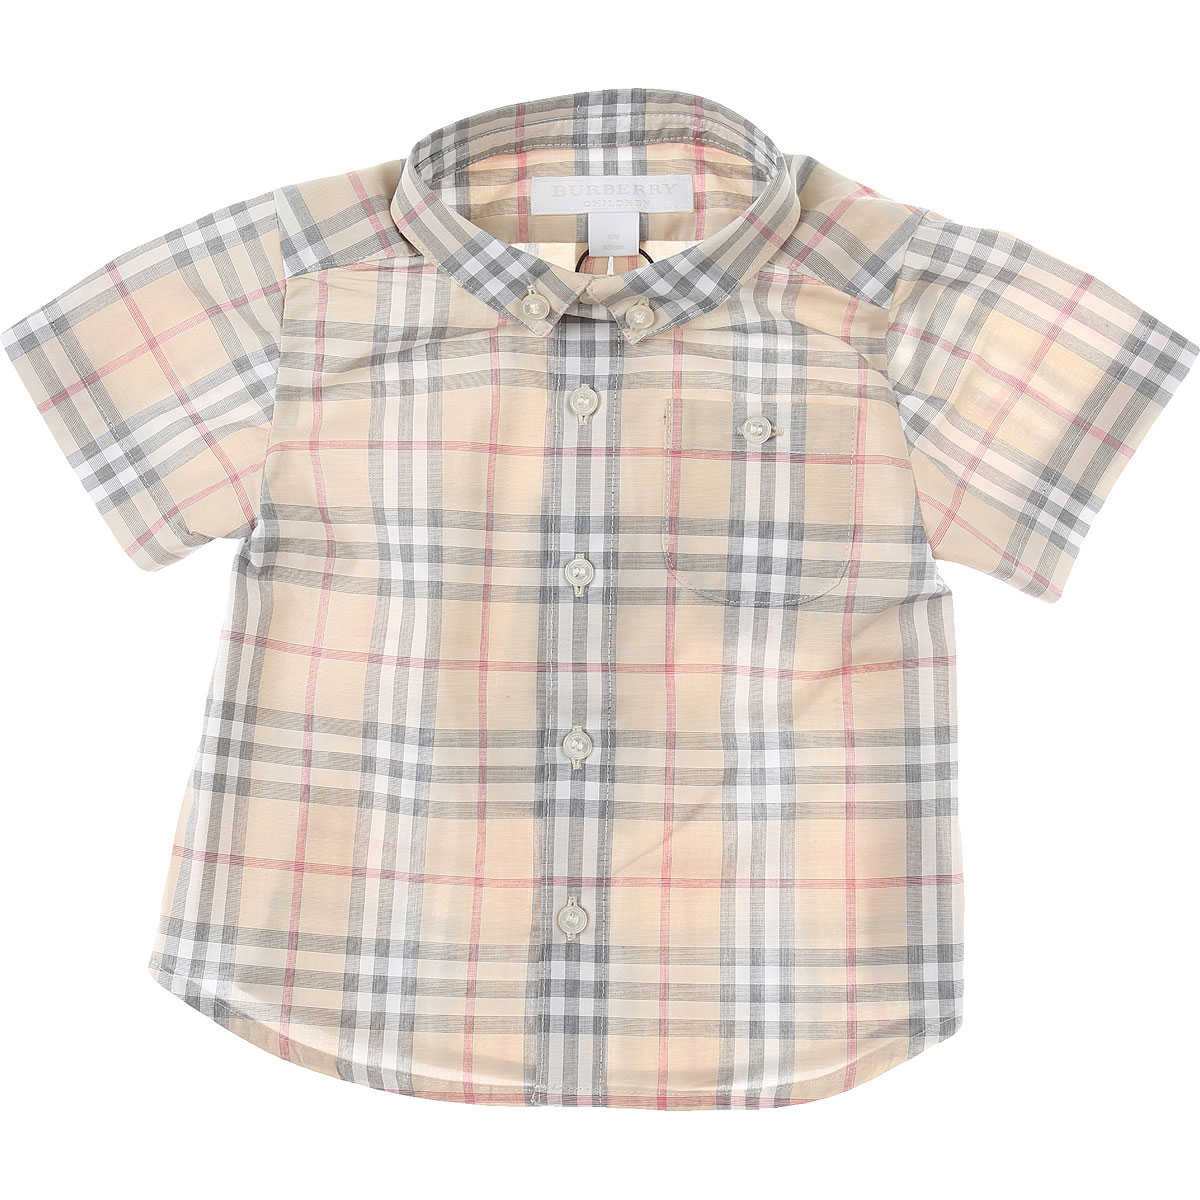 Burberry Baby Shirts for Boys Beige USA - GOOFASH